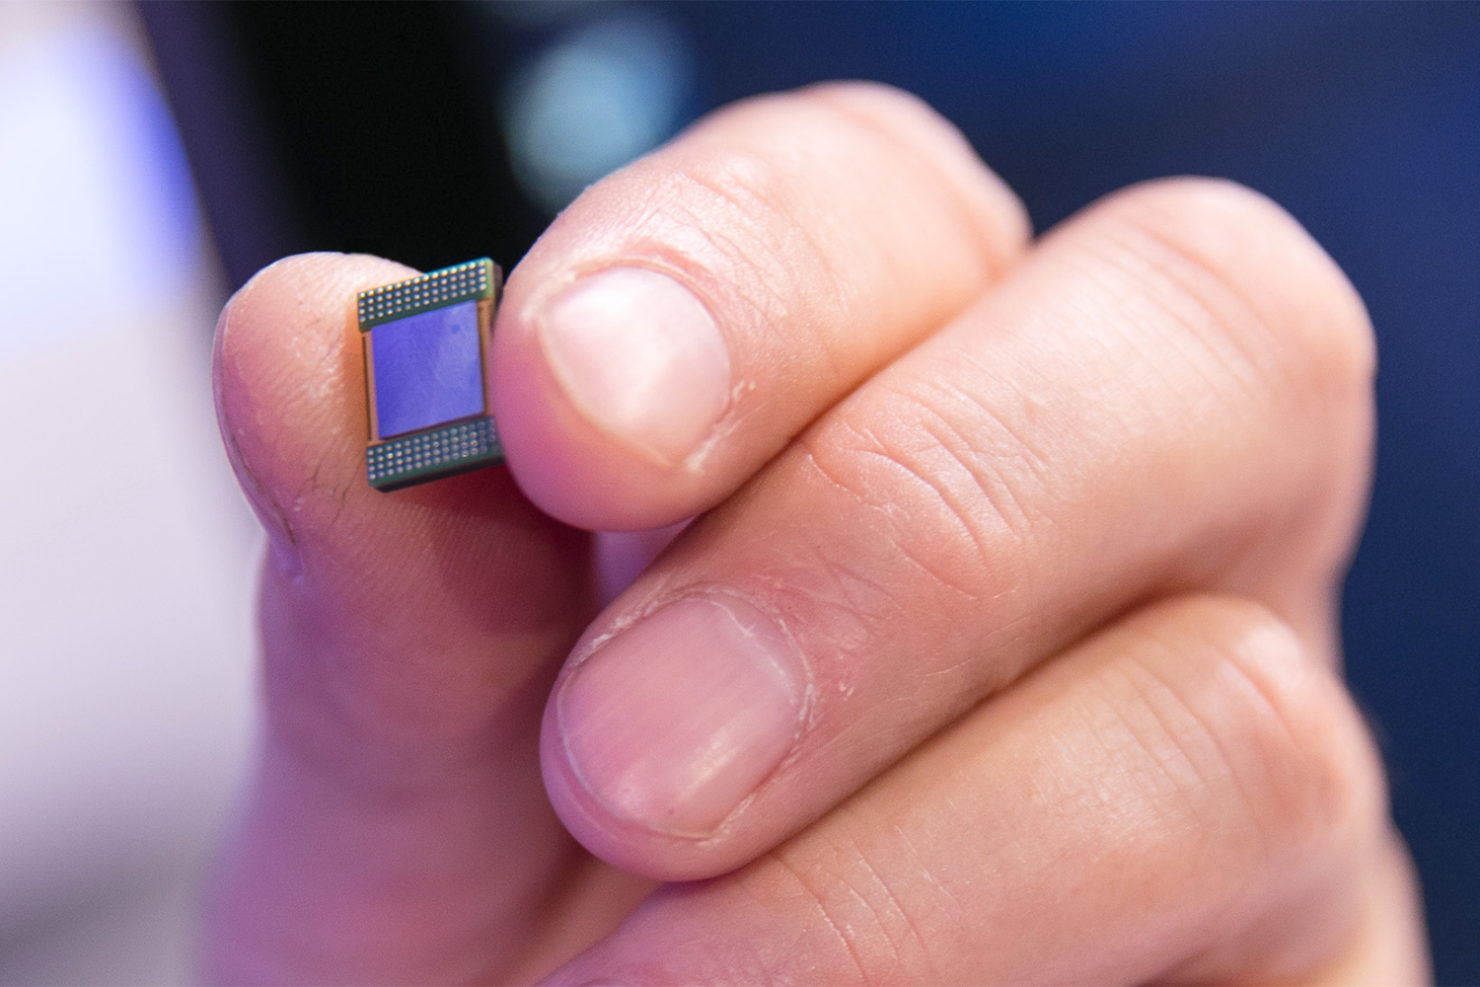 Intel and ARM collaborating on next gen 3.5 GHz 10 nm Cortex A ...